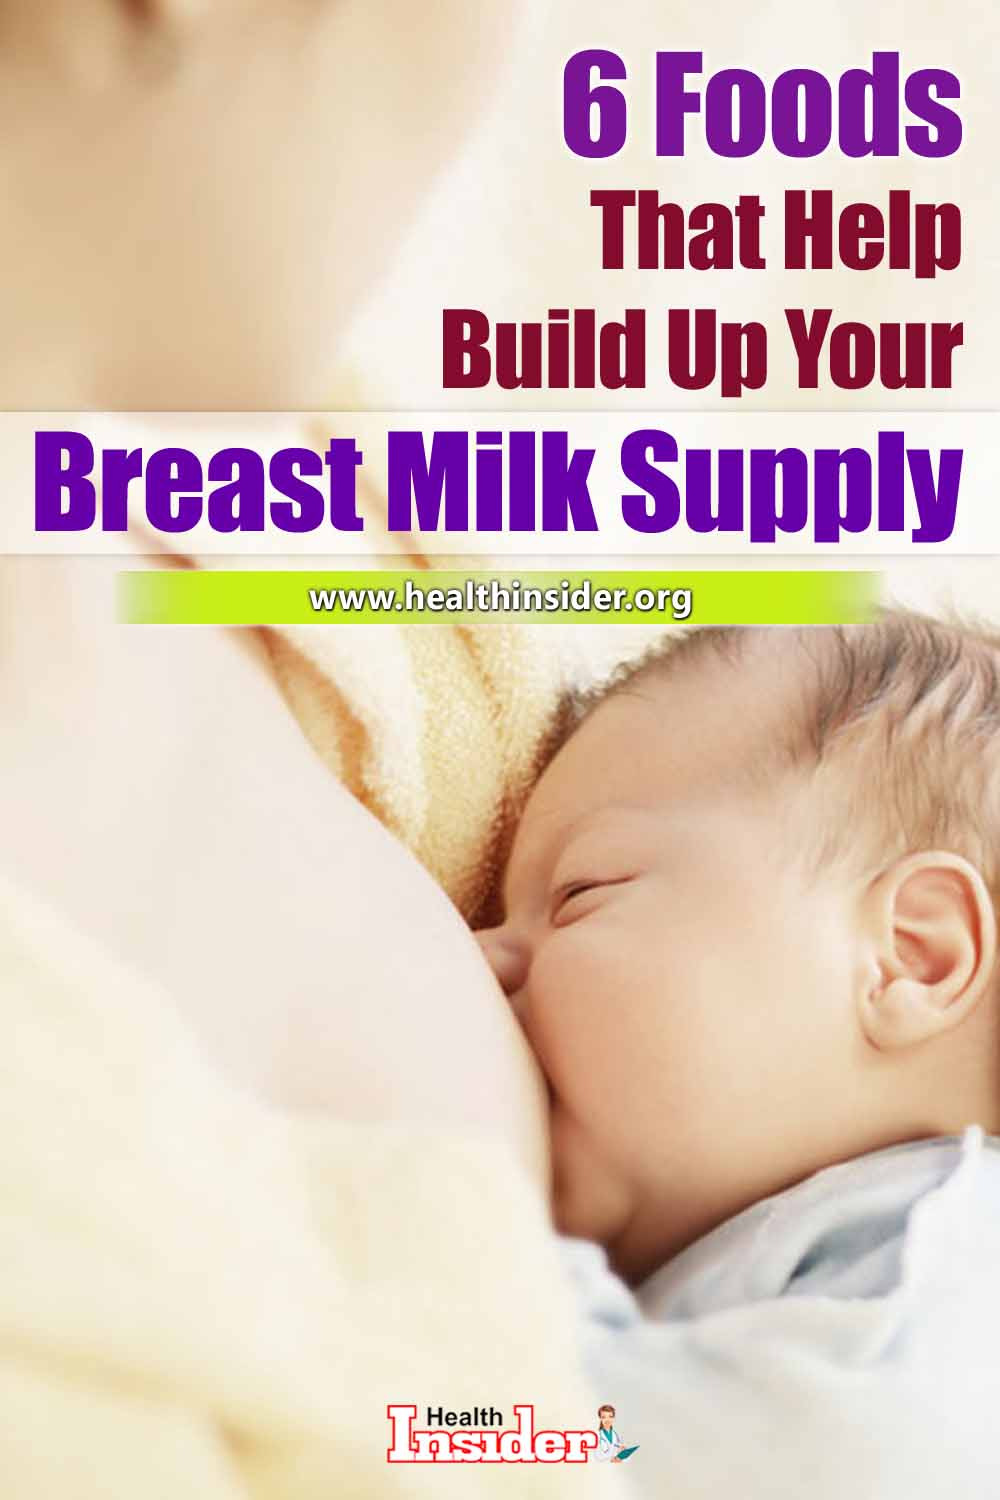 Here's a look at six best foods thought to help boost breast milk production — and the science behind those claims. #breastfeedingtips #breastfeedingdiet